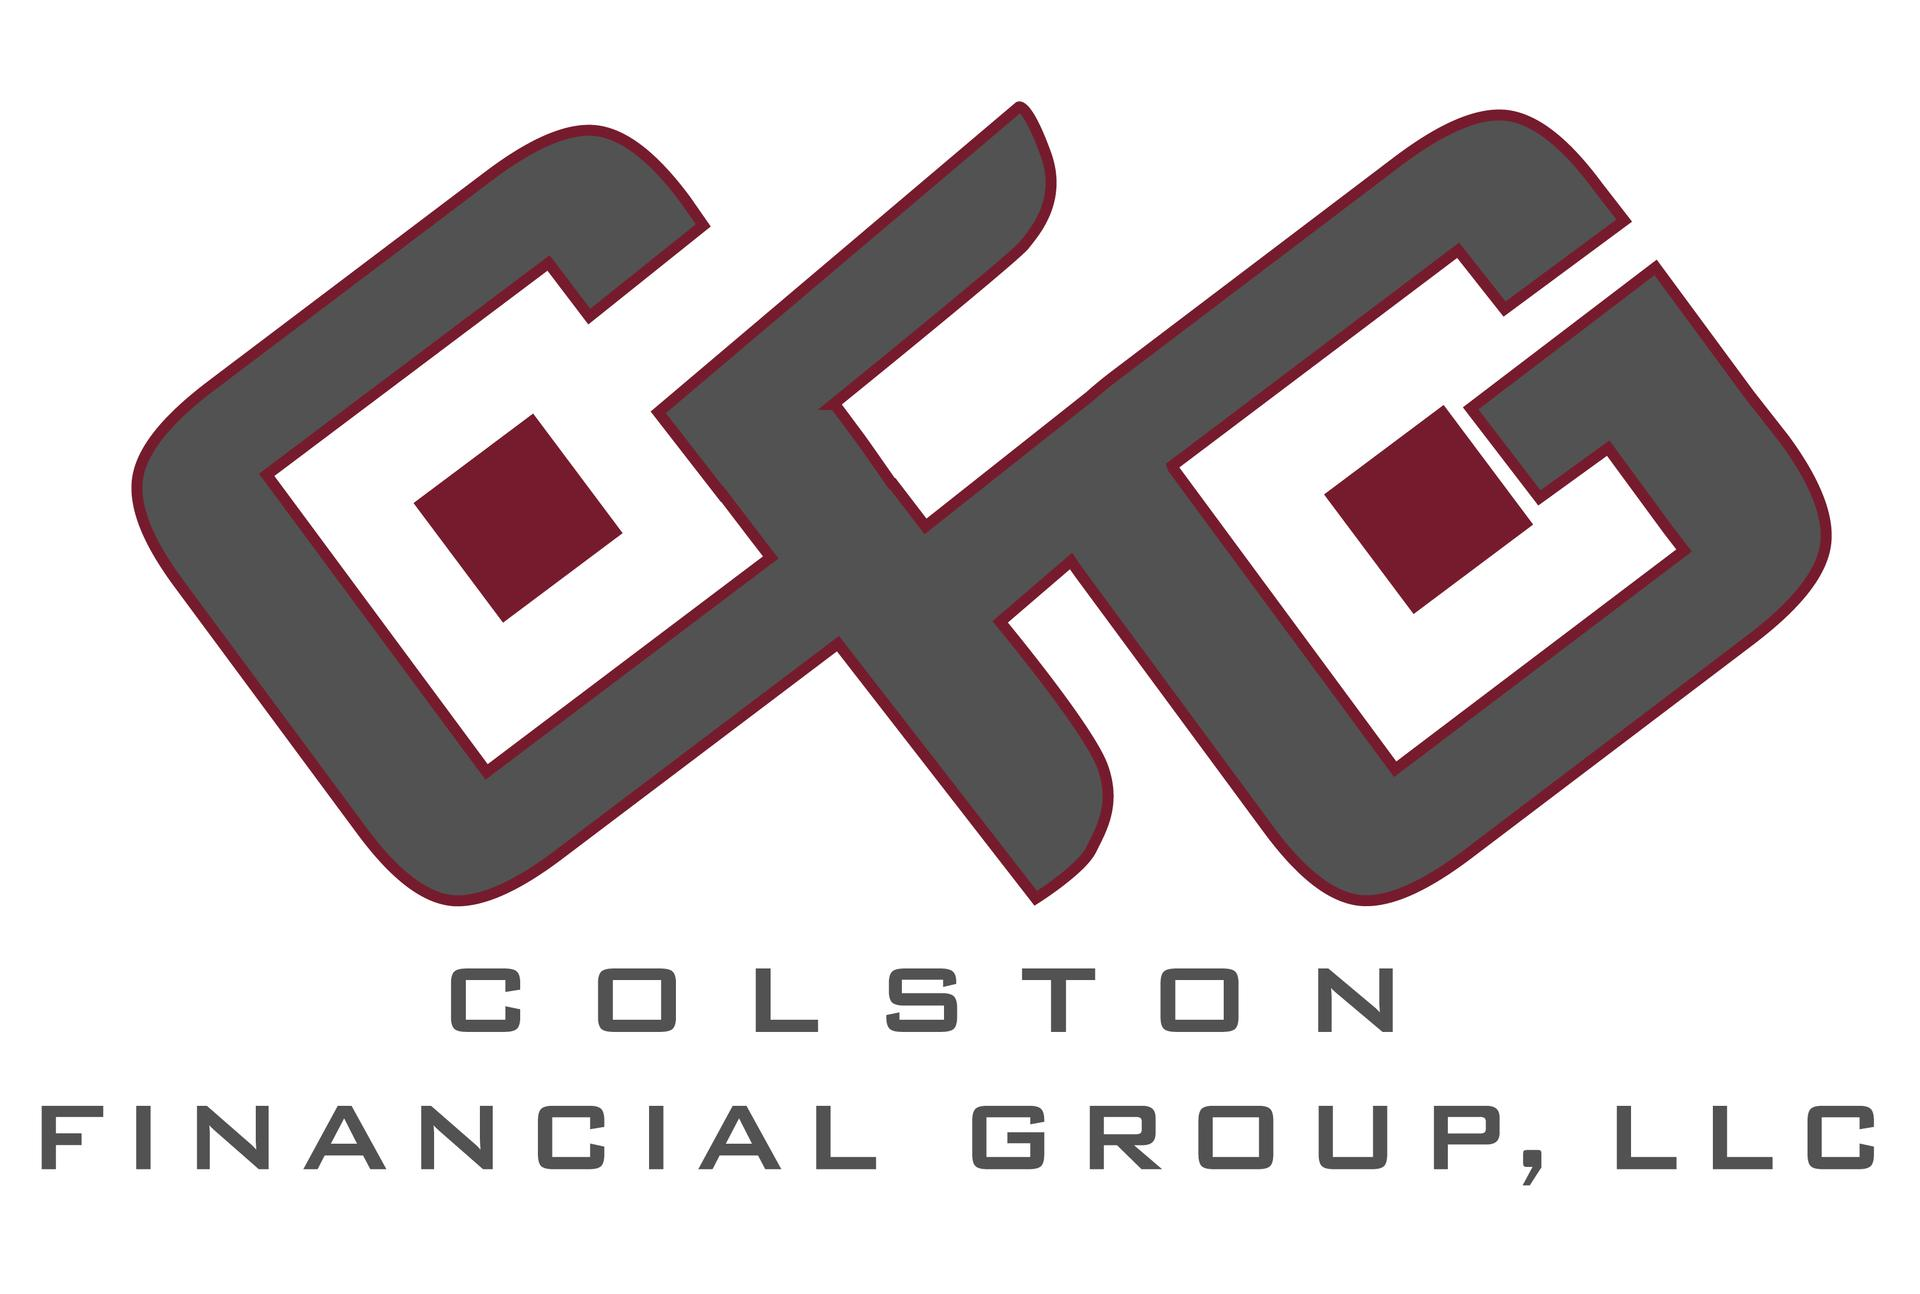 Colston Financial Group, LLC